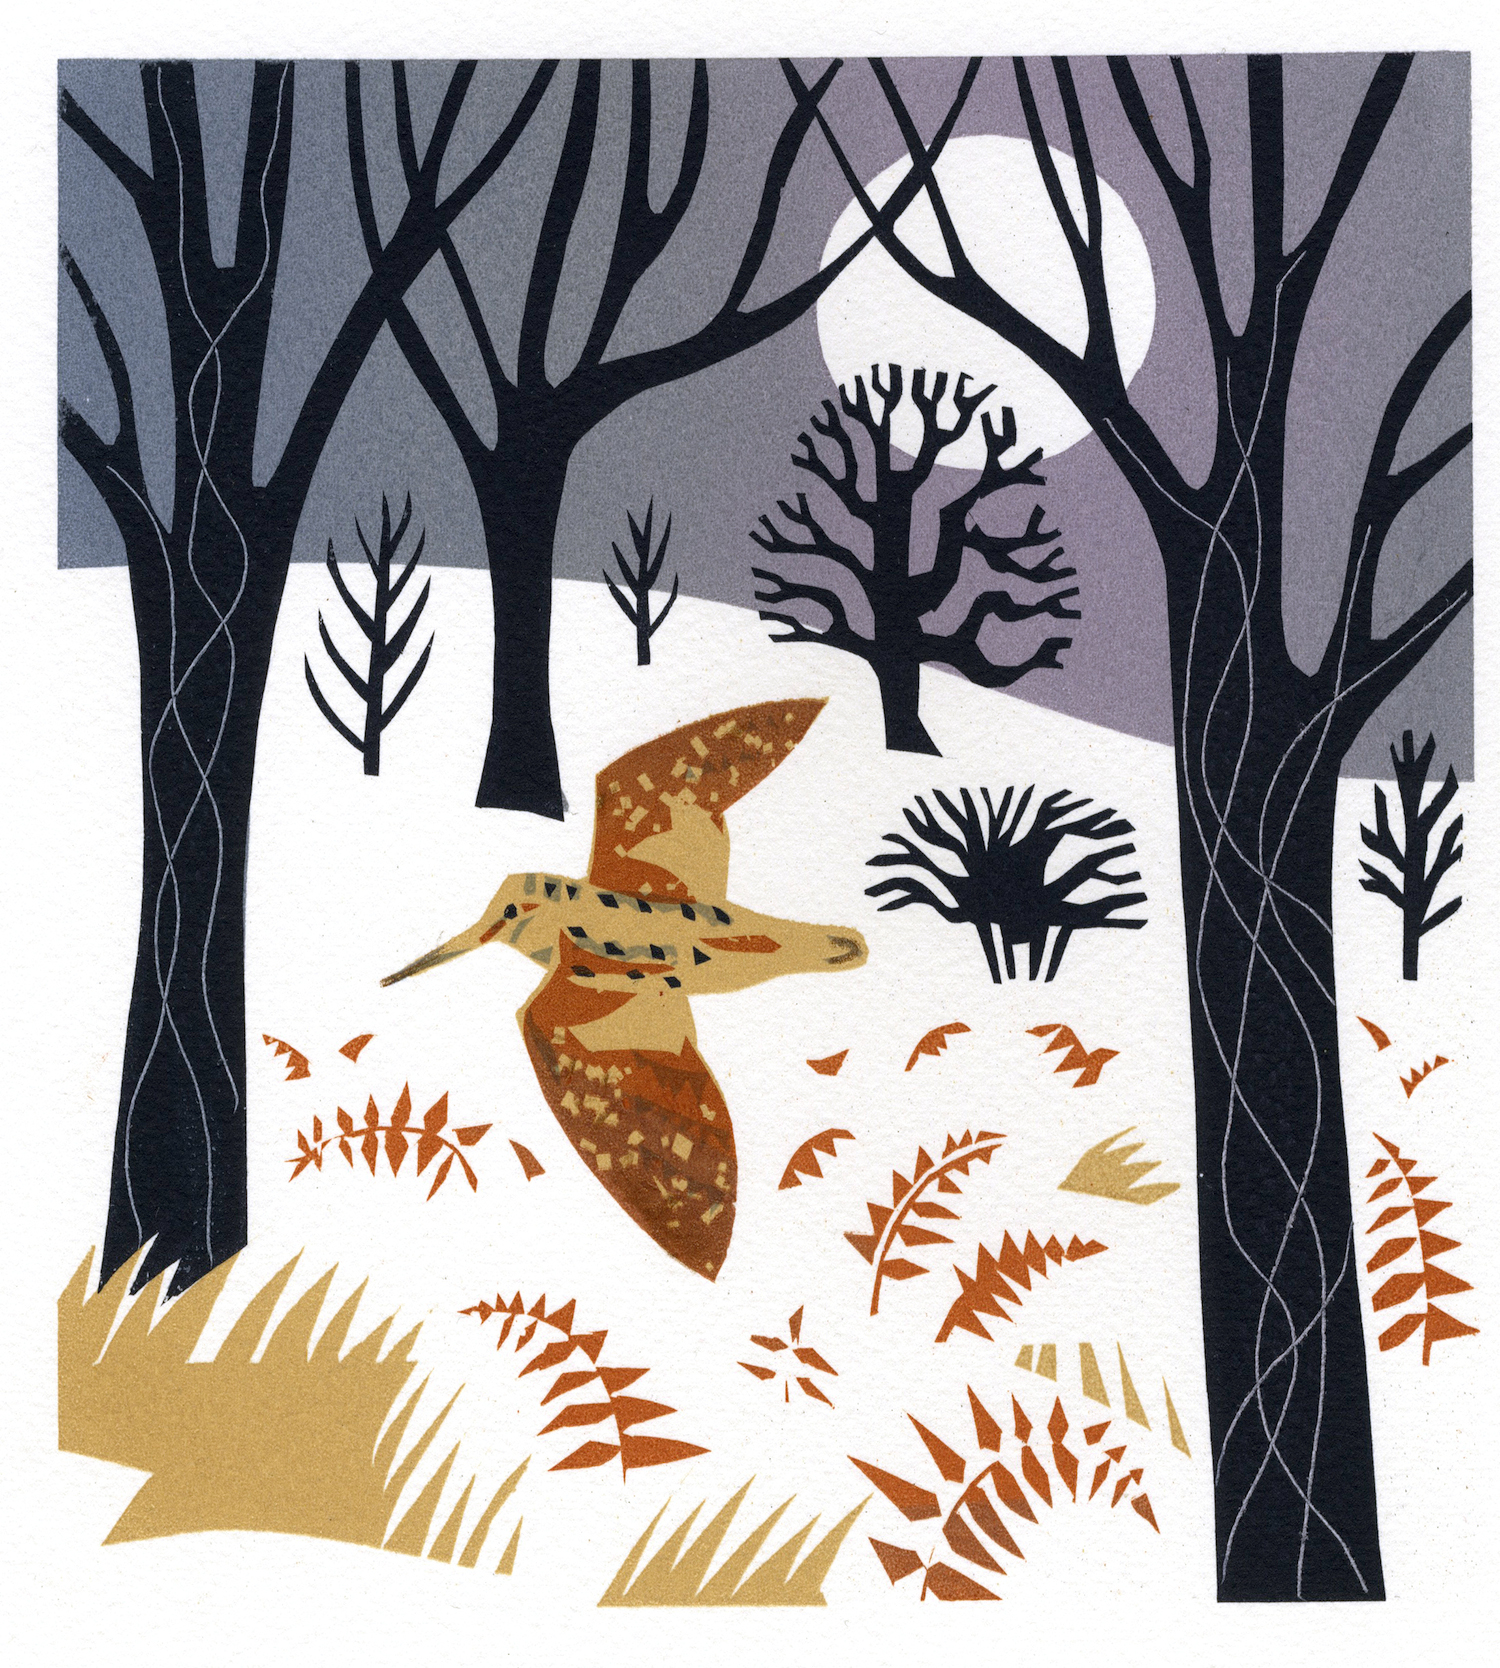 Woodcock   serigraph   edition of 10  30 x 30 cm  £280 framed, £210 unframed